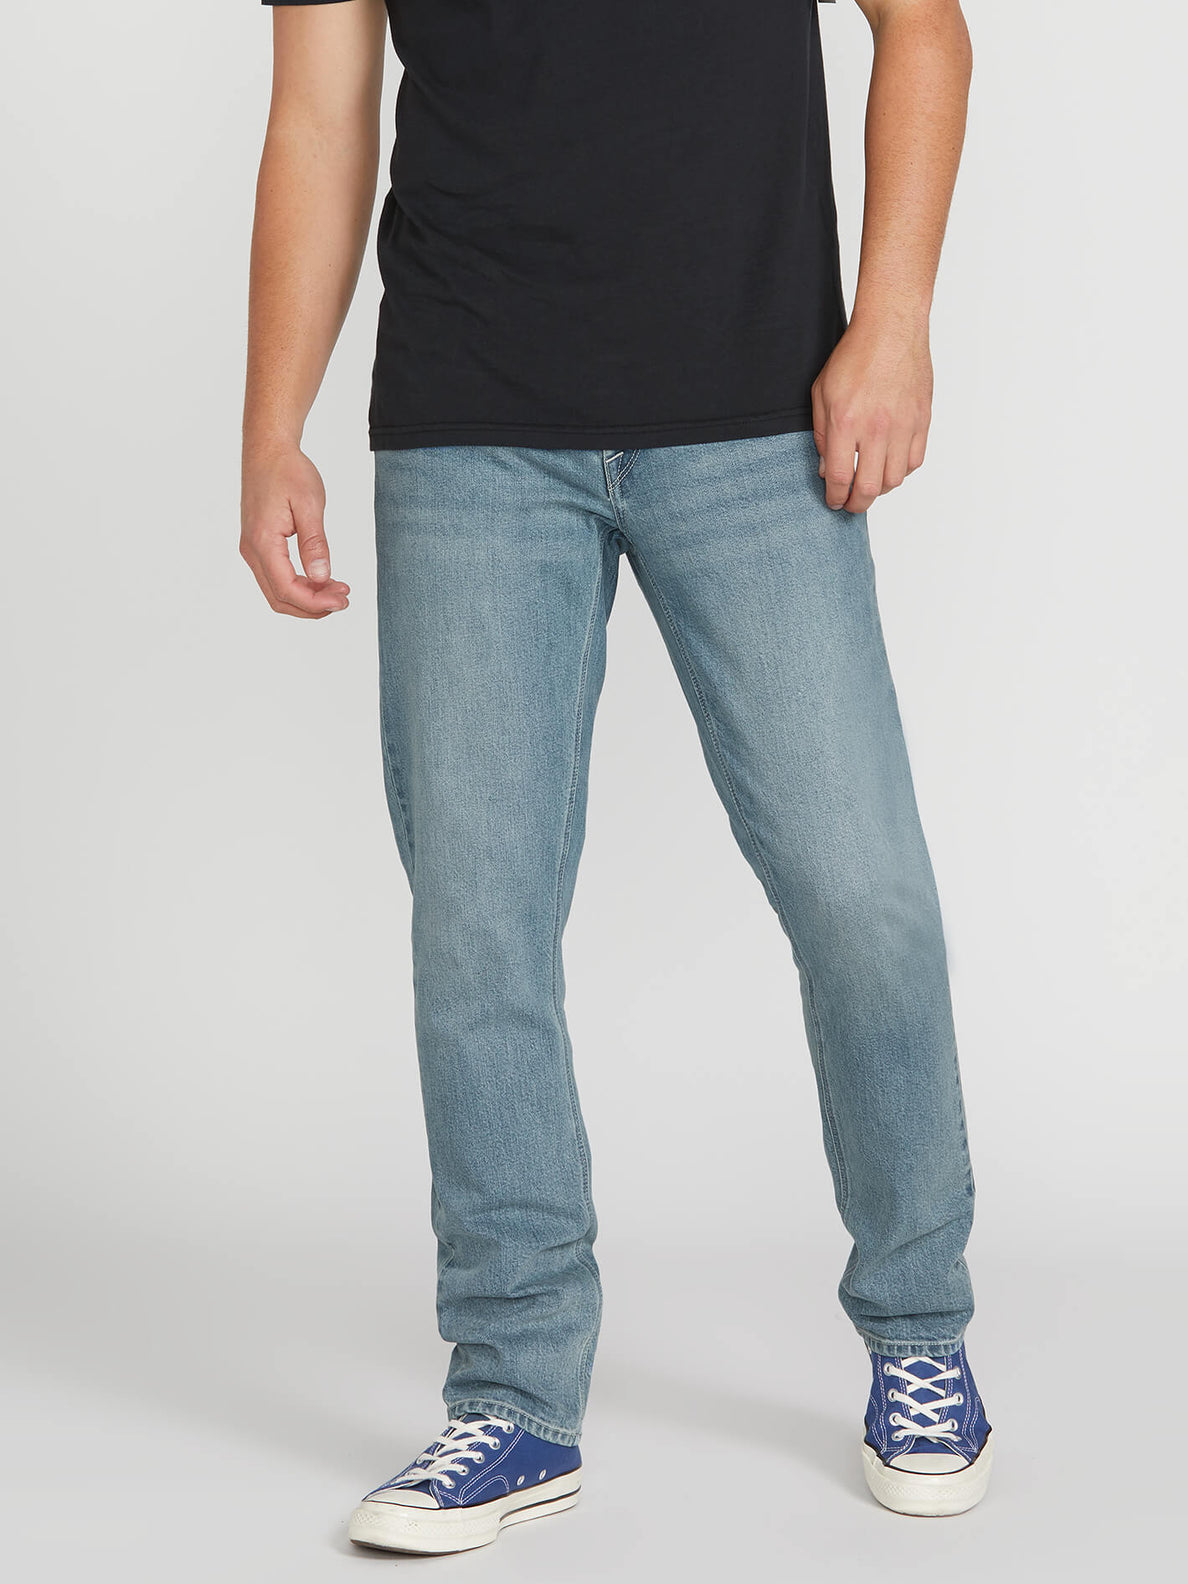 Vorta Slim Fit Jeans - Wide Goods Light (A1931501_WGL) [1]